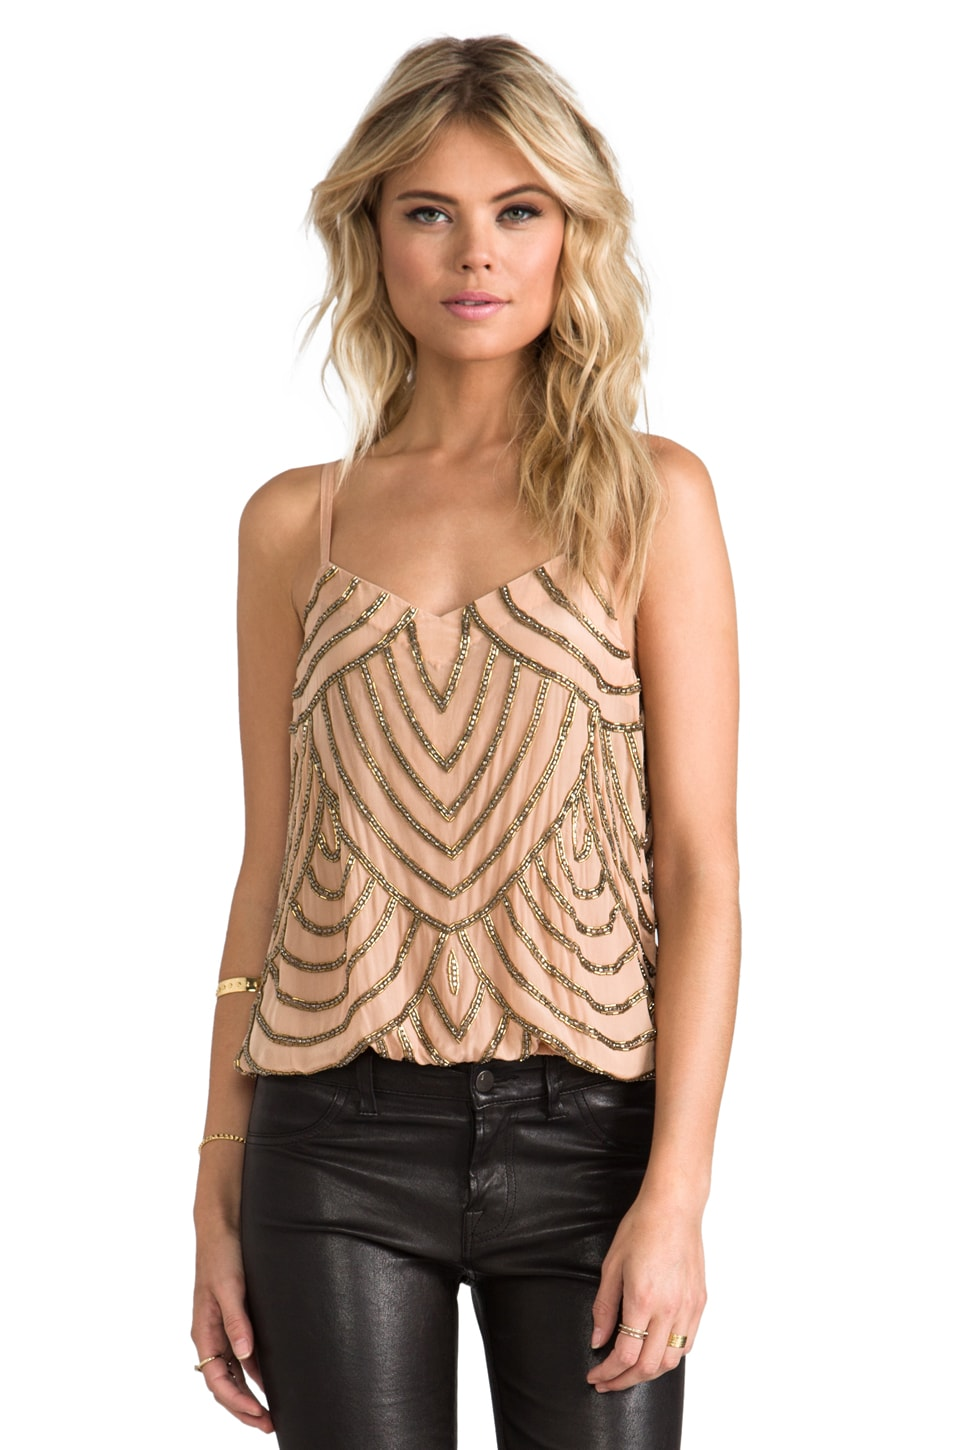 Karina Grimaldi Deco Beaded Camy in Nude